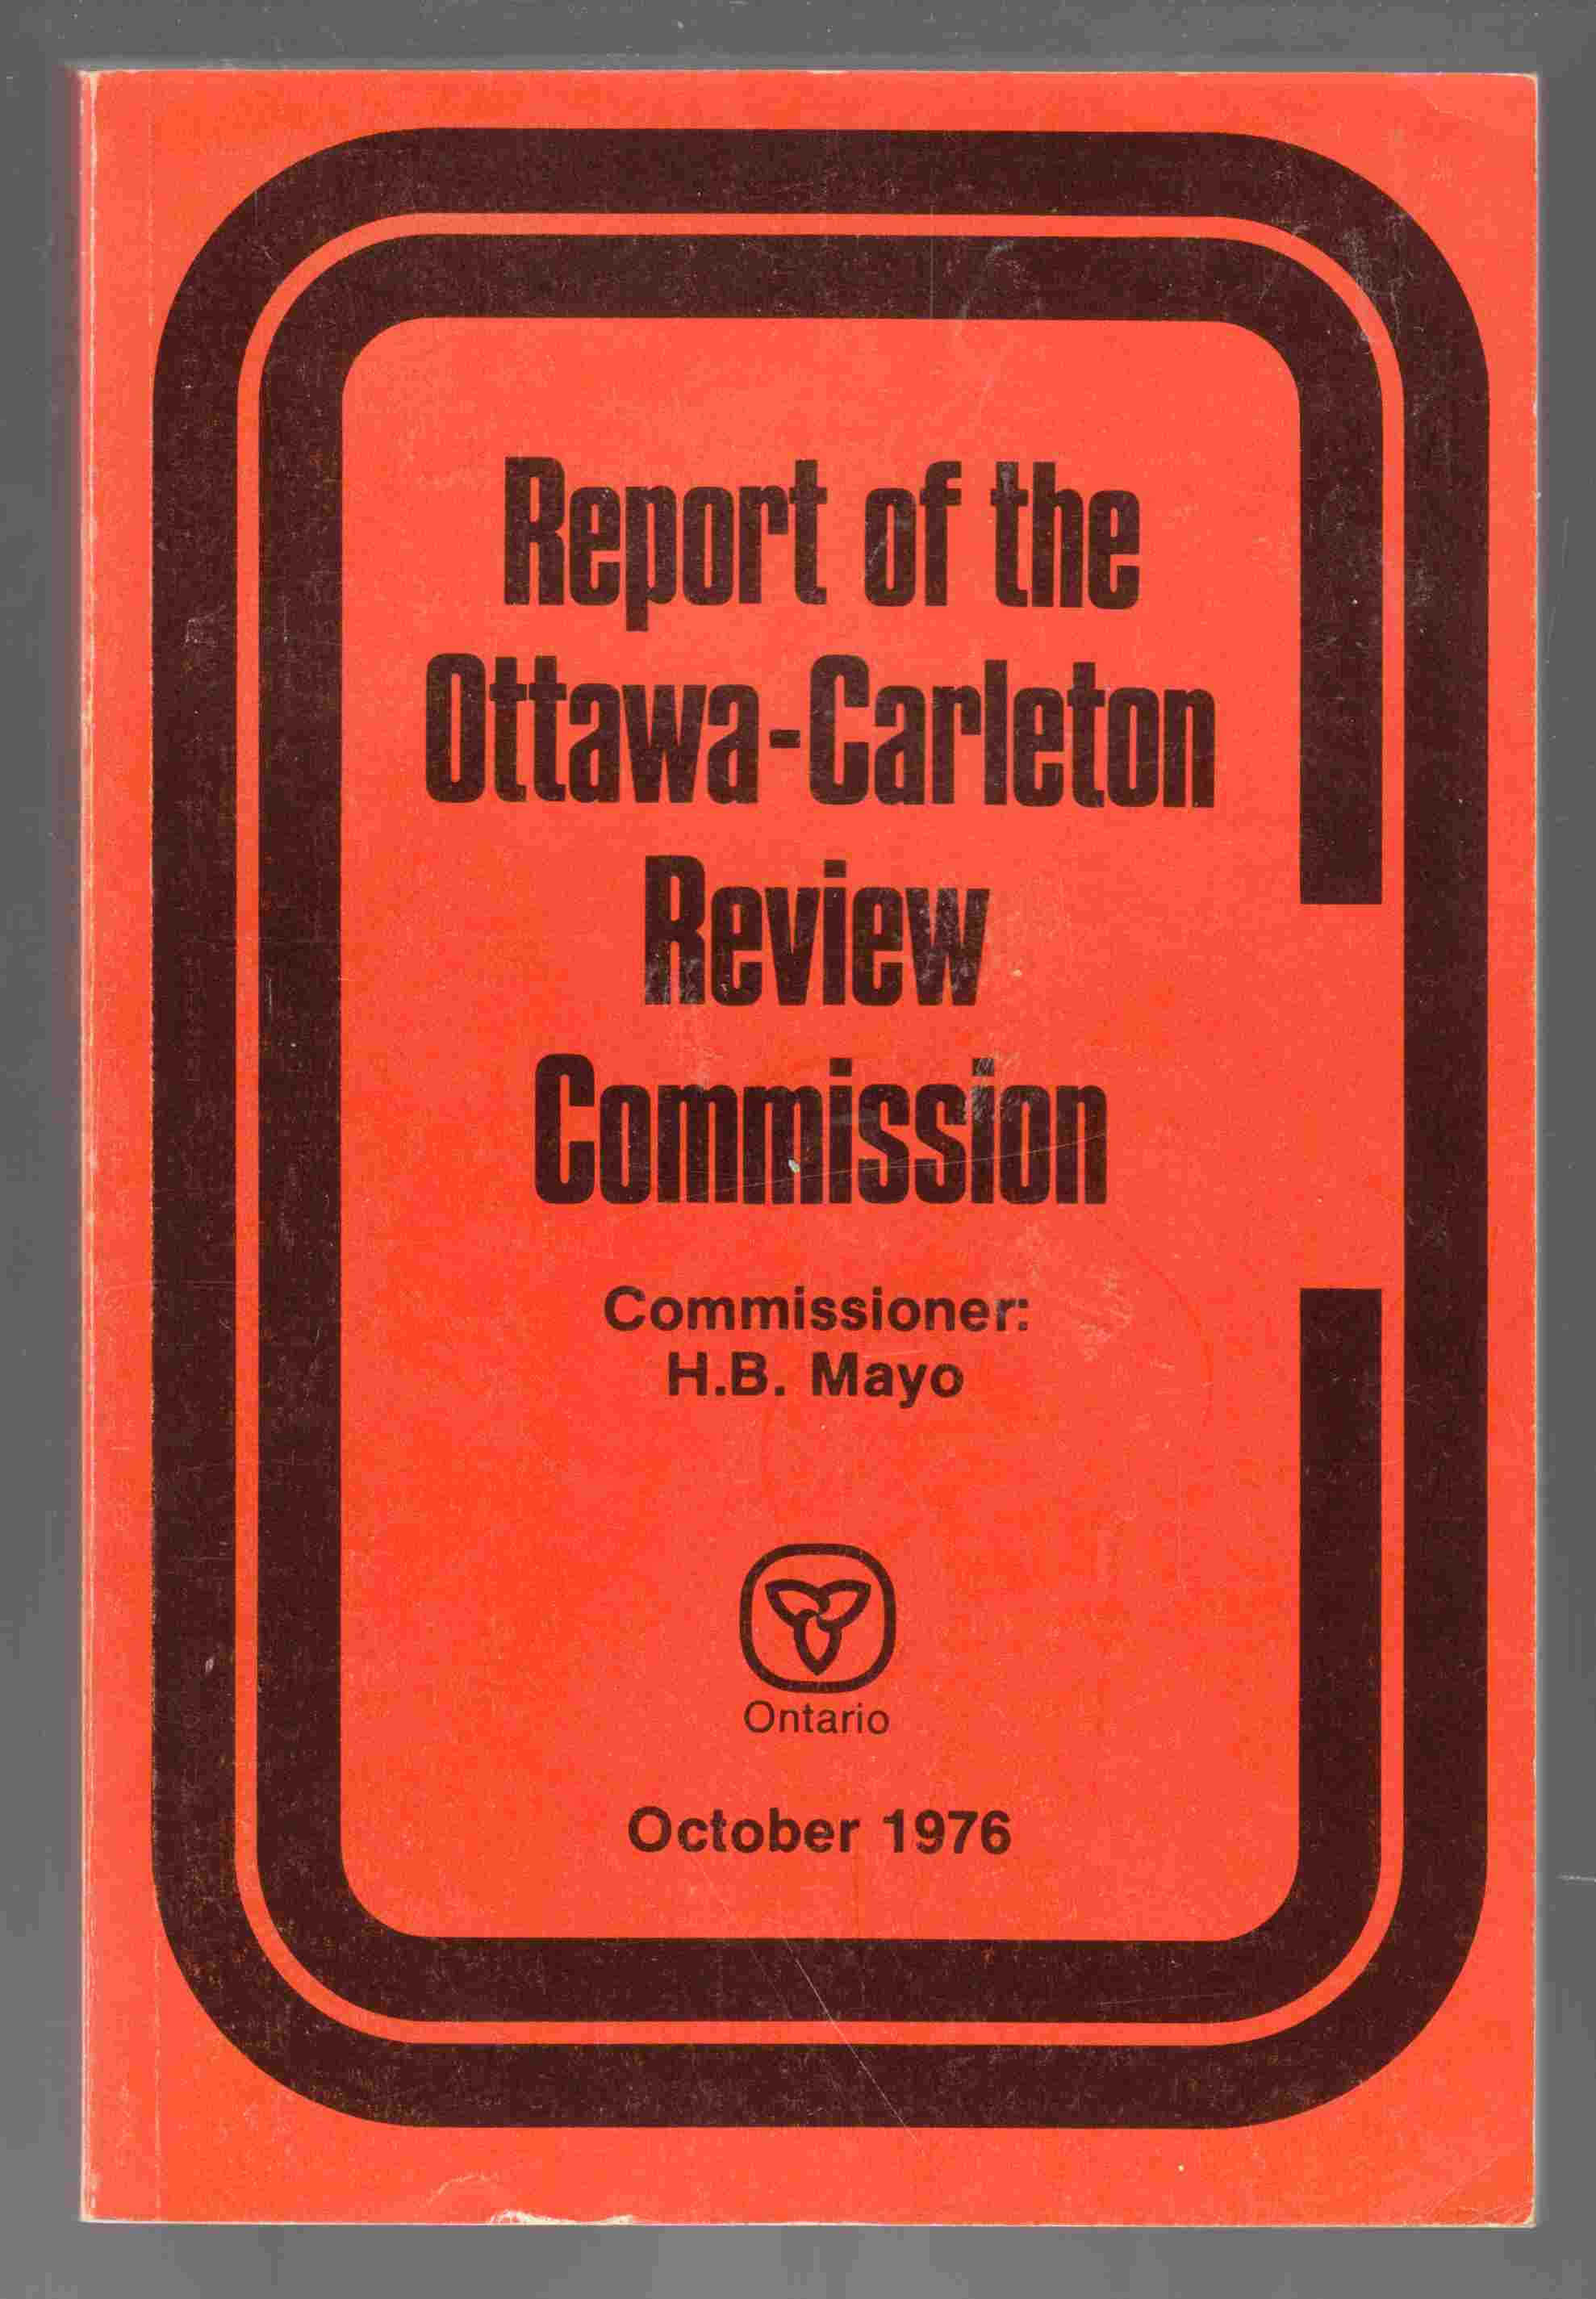 Image for Report of the Ottawa-Carleton Review Commission